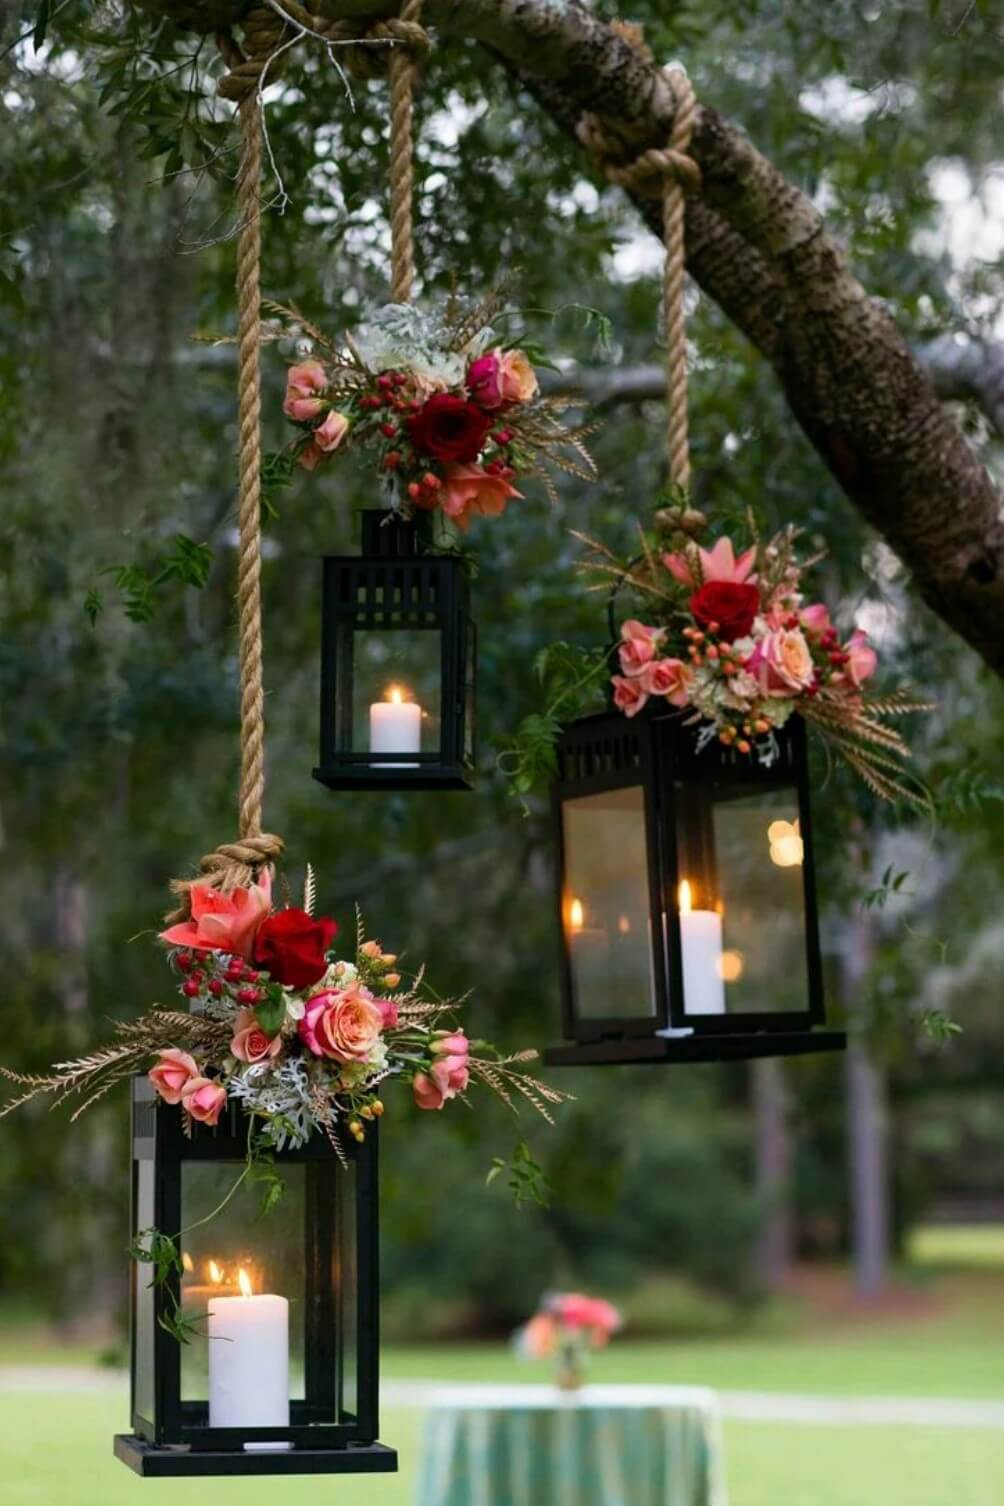 Hanging Candles | Creative DIY Garden Lantern Ideas - FarmFoodFamily.com